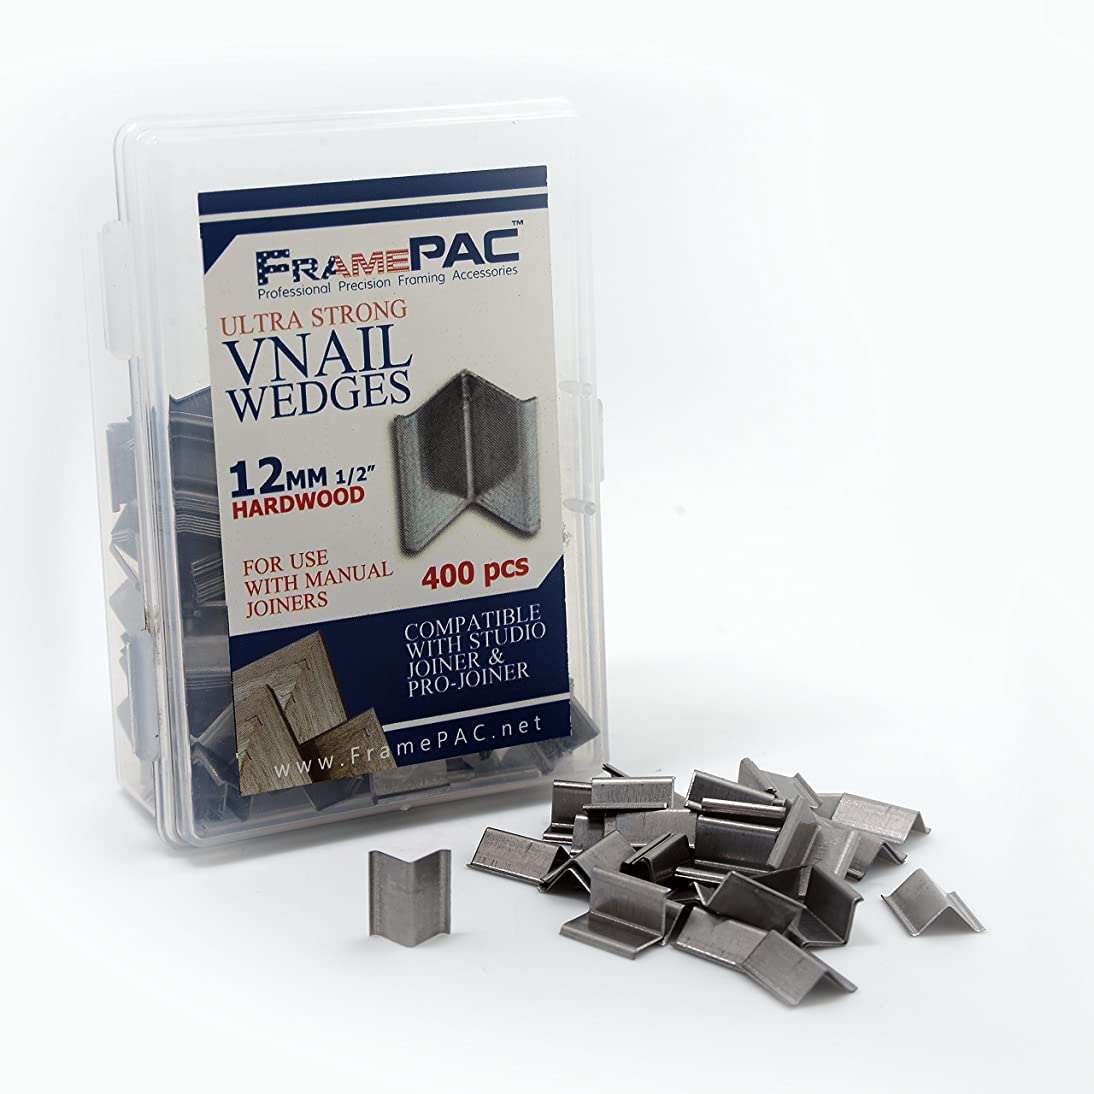 V Nails for Picture Framing - Ultra Strong - 12mm (1/2 Inch) Vnail Wedges for Joining Picture Frame Corners - Hardwood Frames [400 V Nail Pack, Loose]